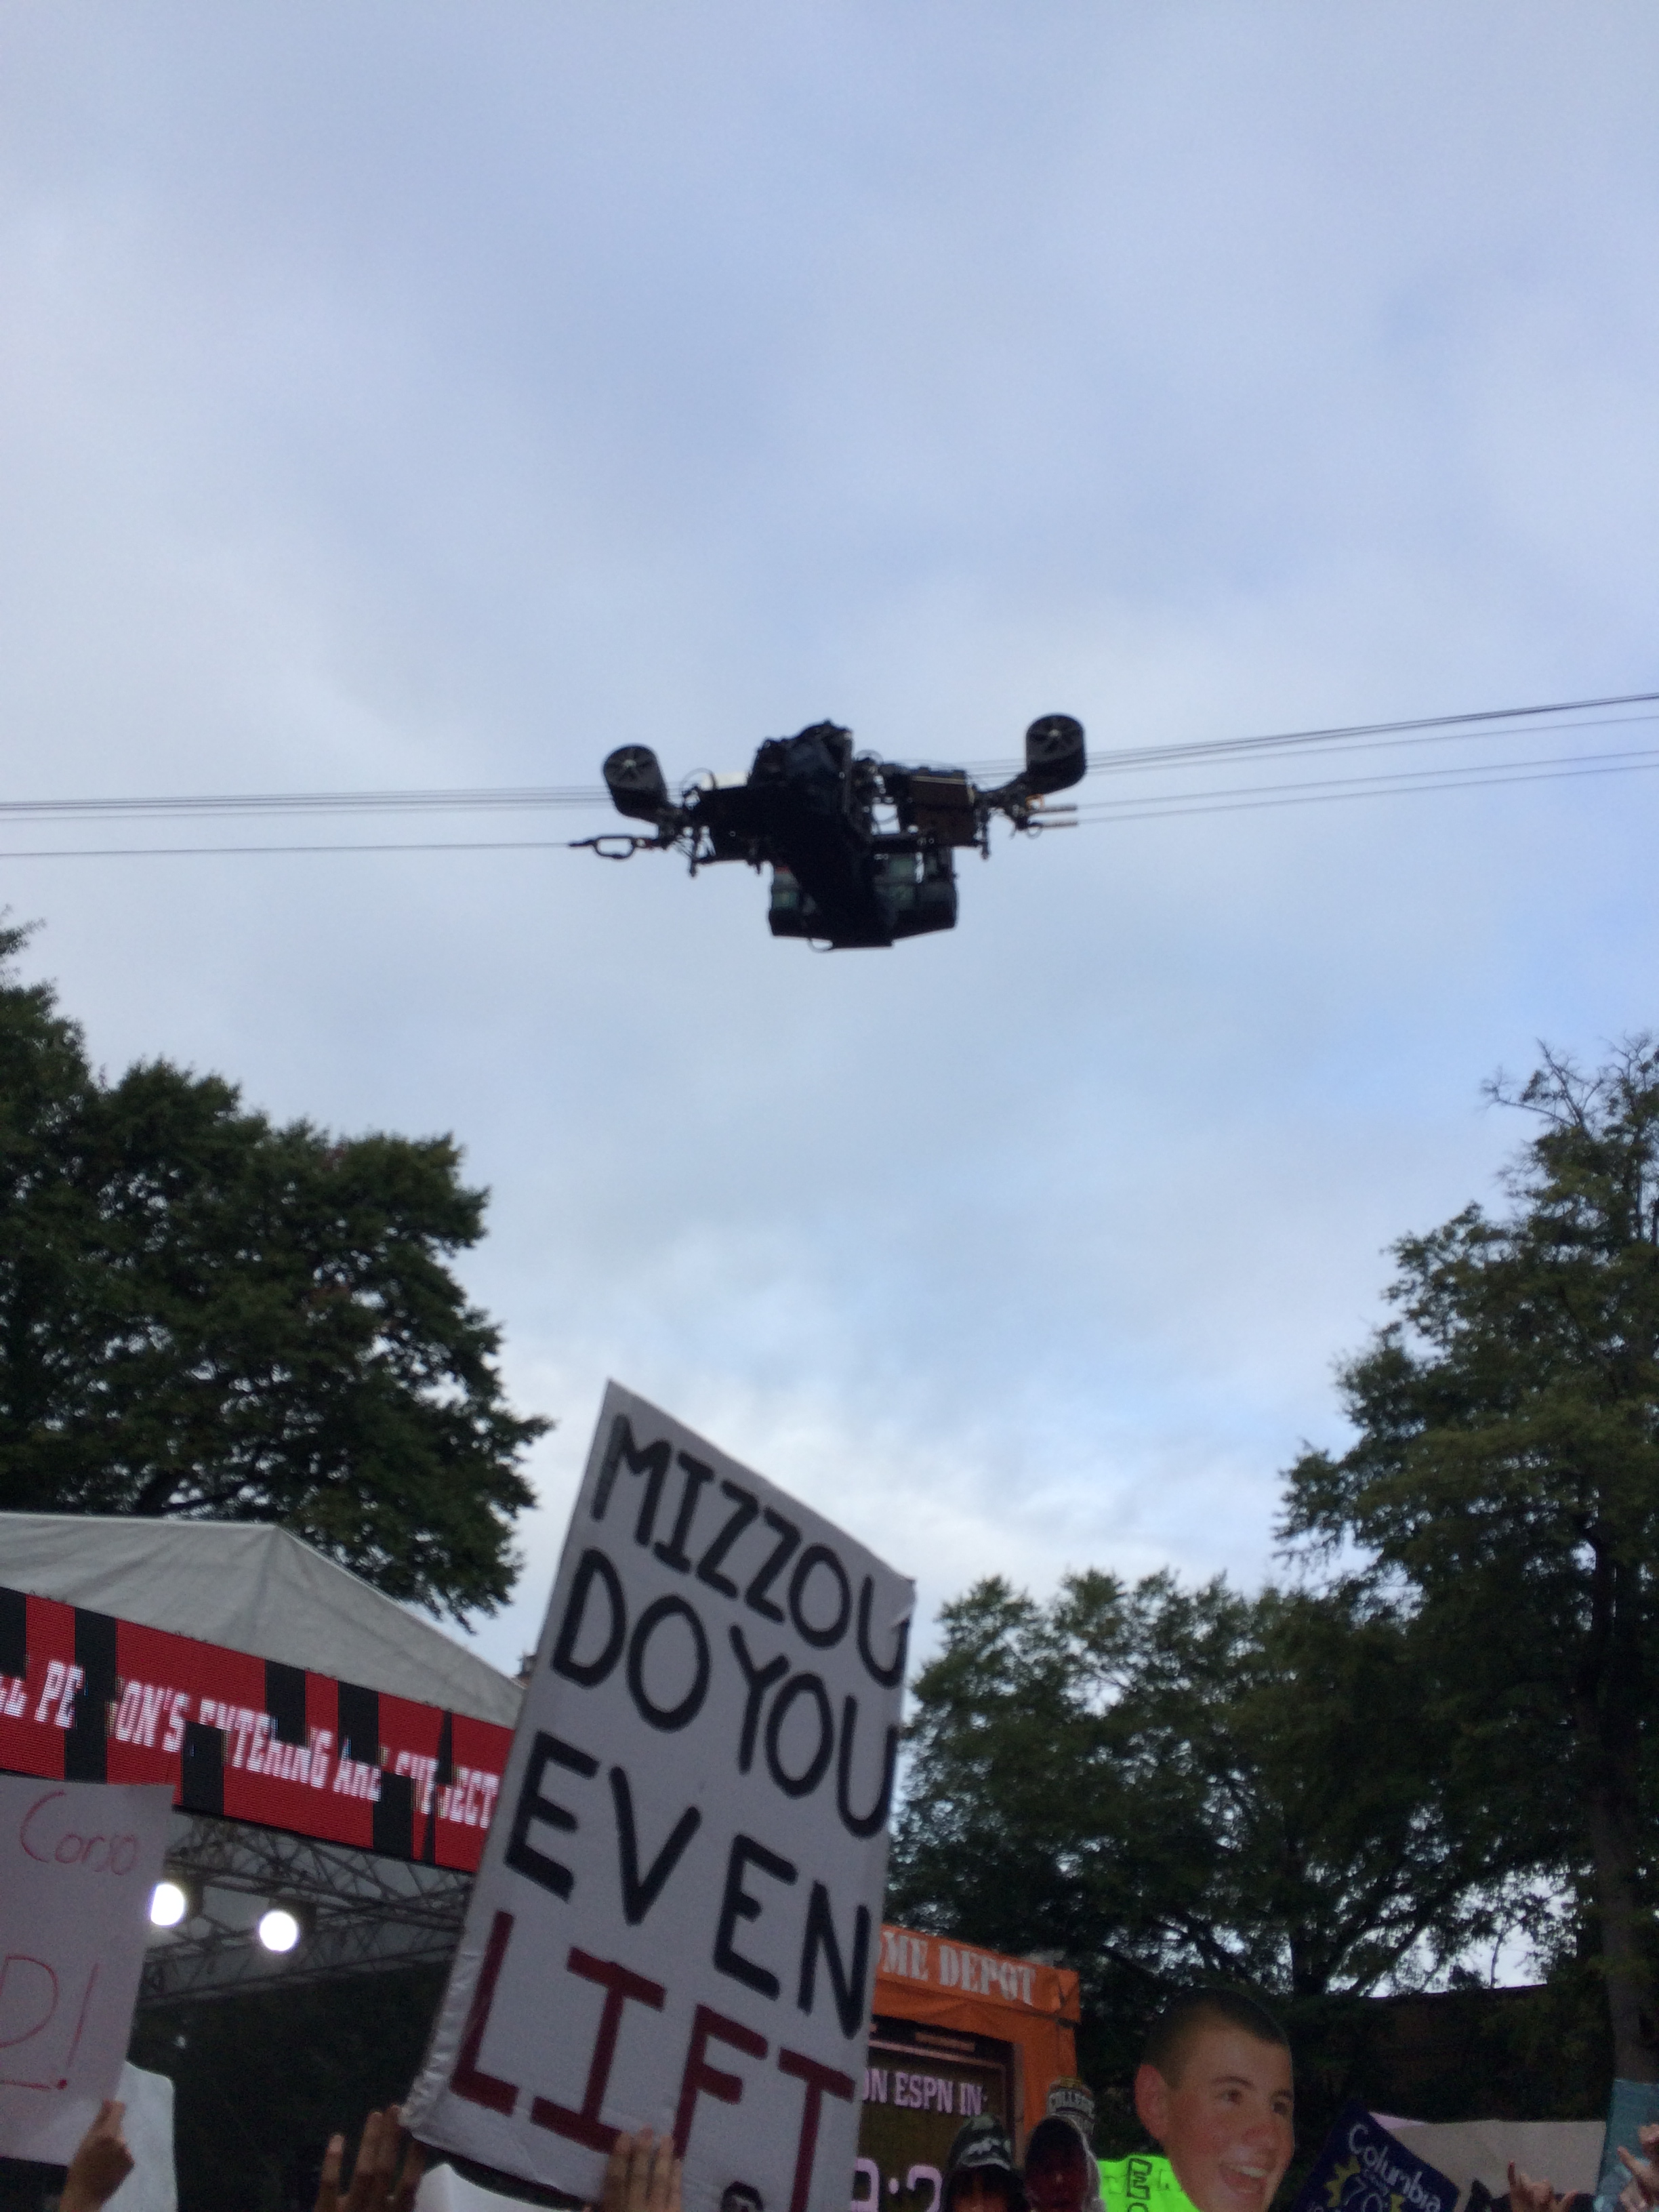 A look at one of the cameras that would fly by.